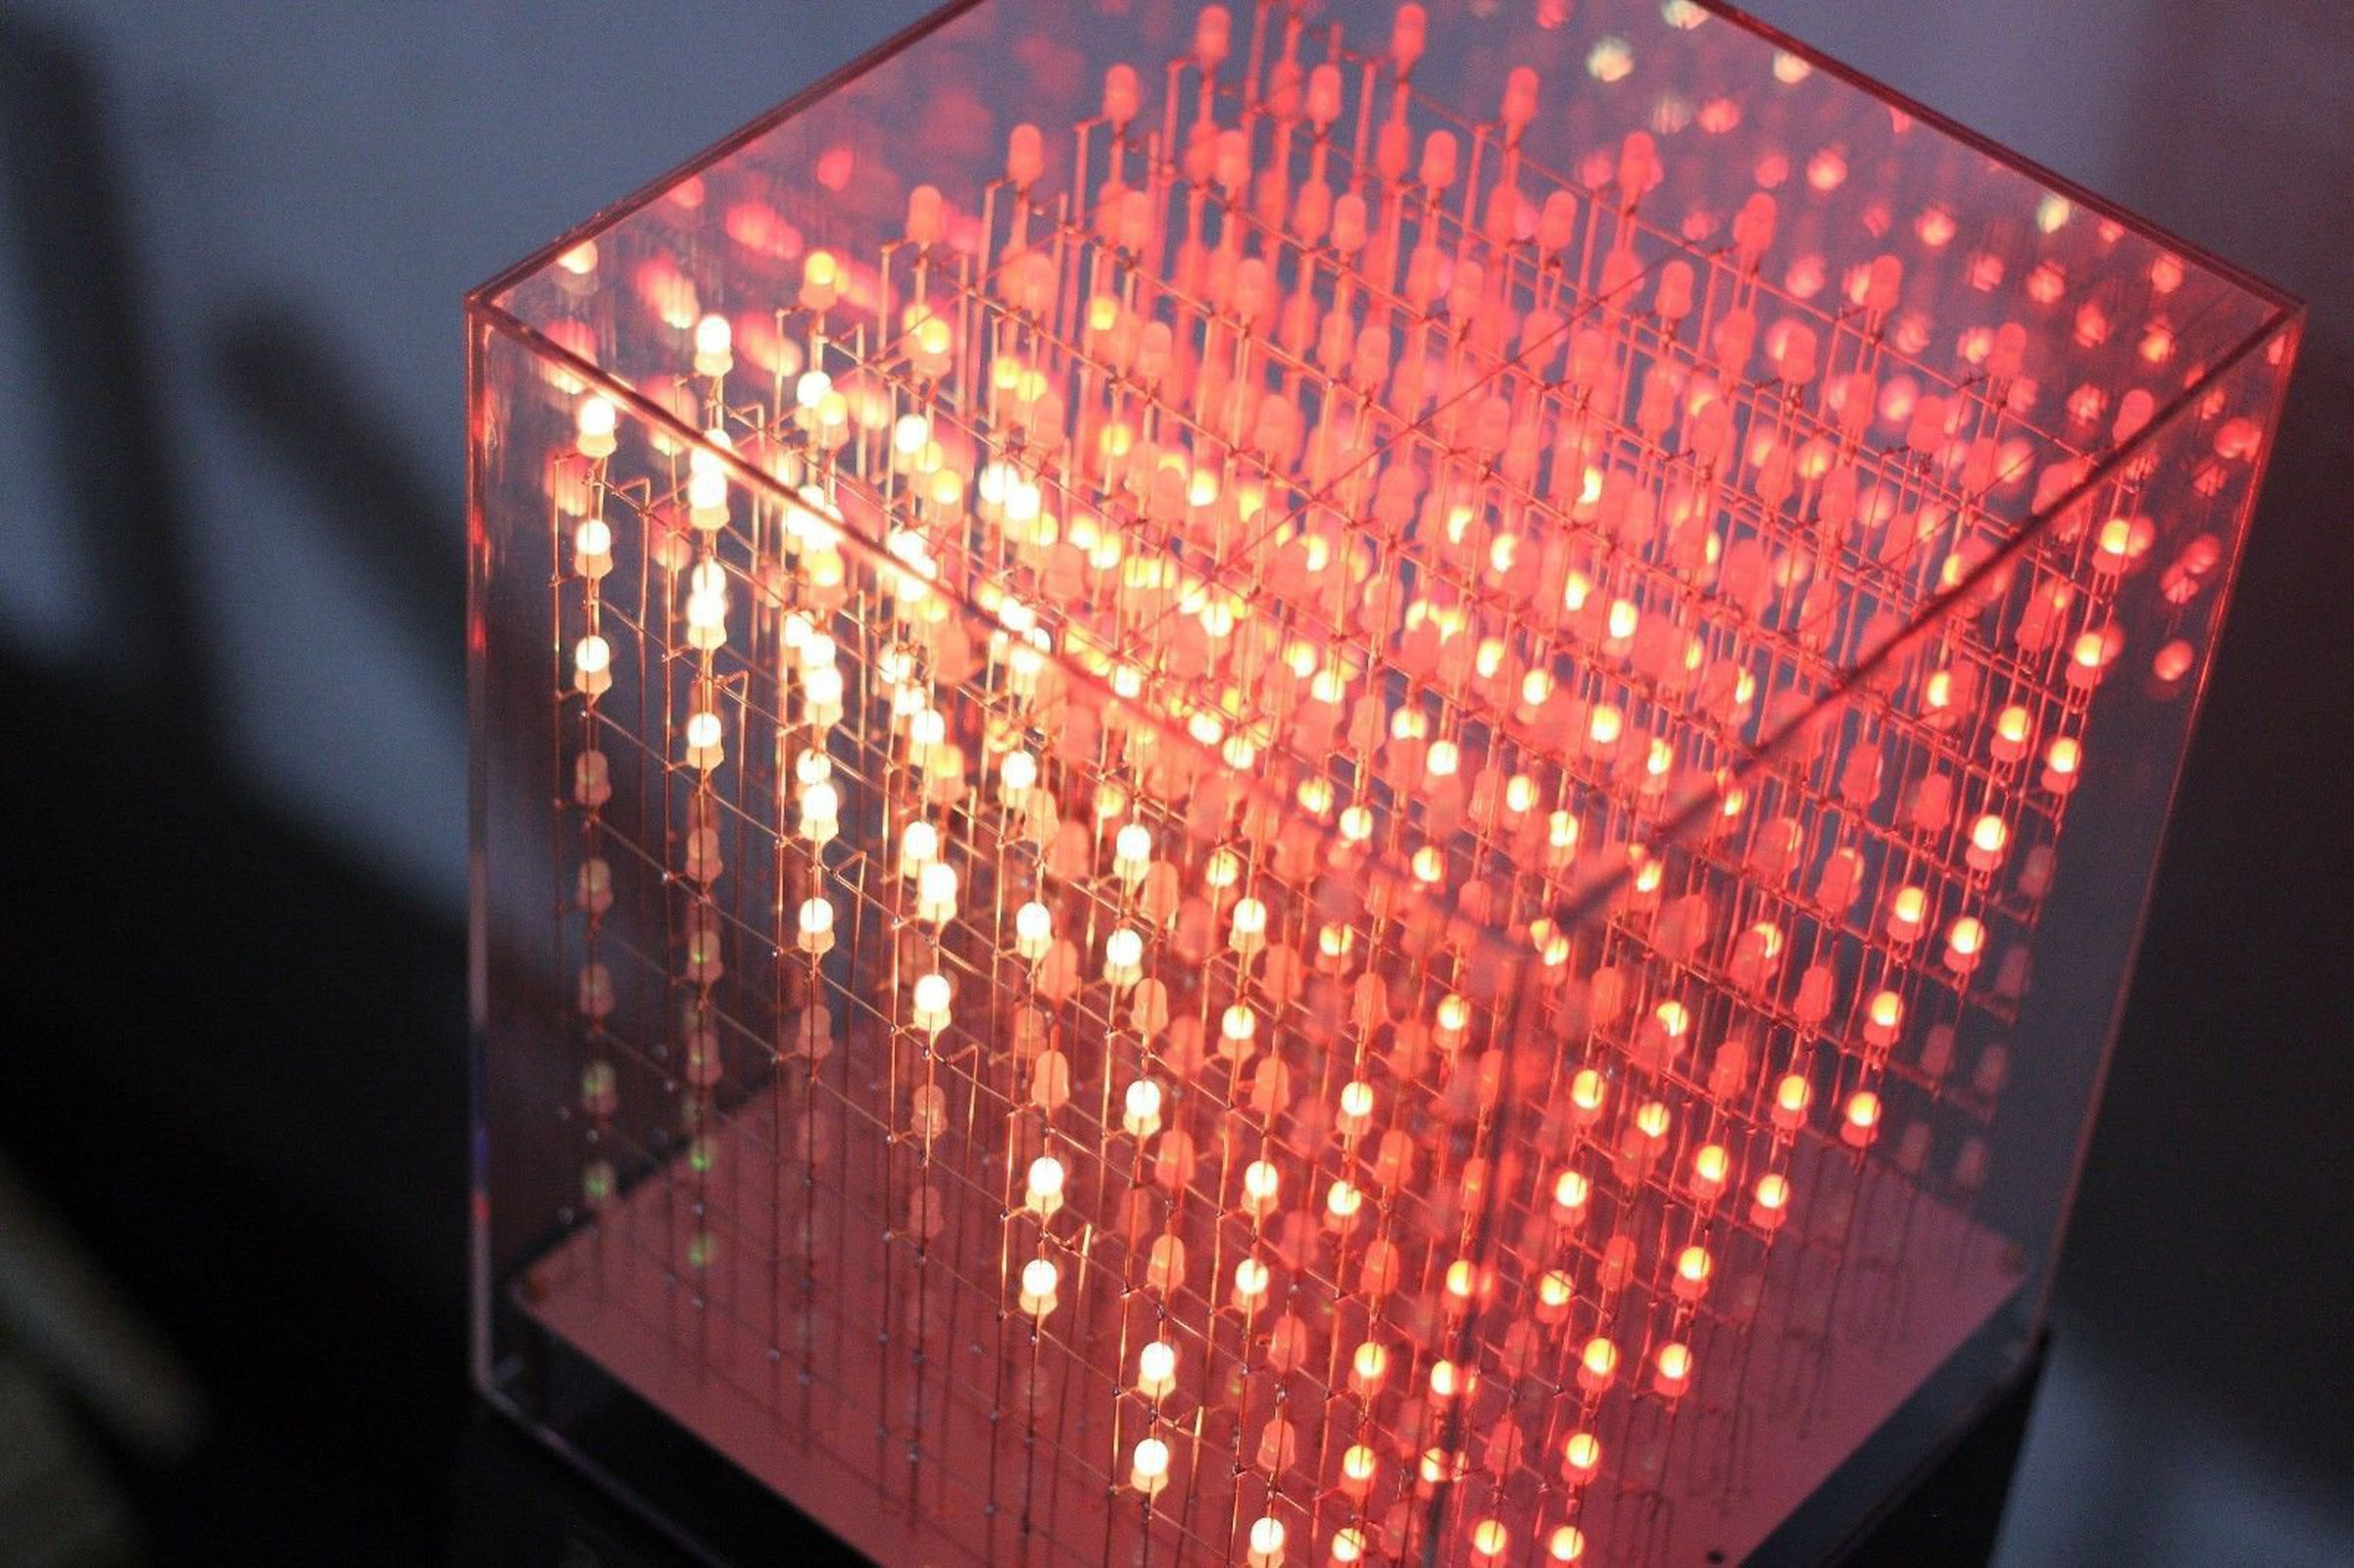 Auracube 8x8x8 3d Rgb Led Cube Diy Kit From Nixt Clock On Tindie How To Build Multicolor Hd 4